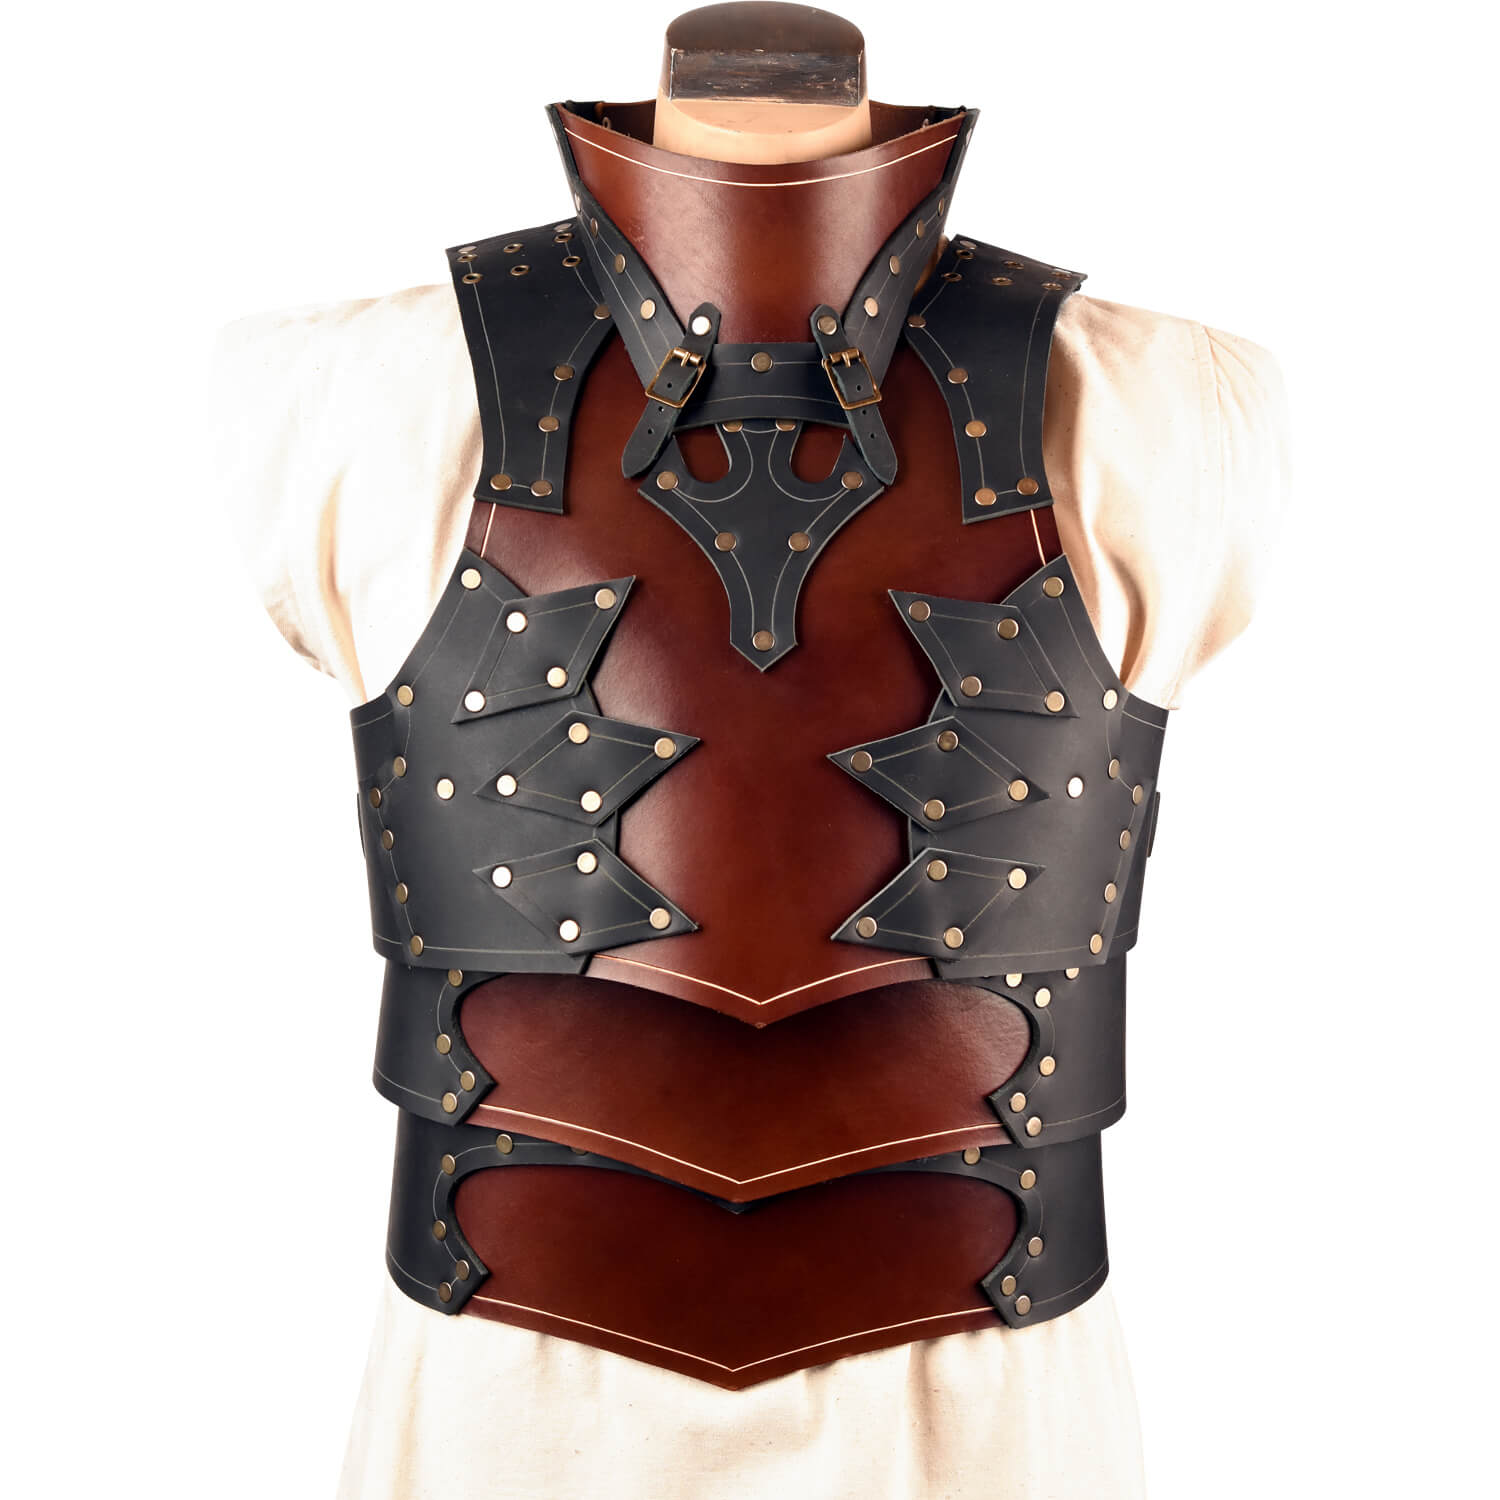 Knight's Armor (Torso with Gorget)